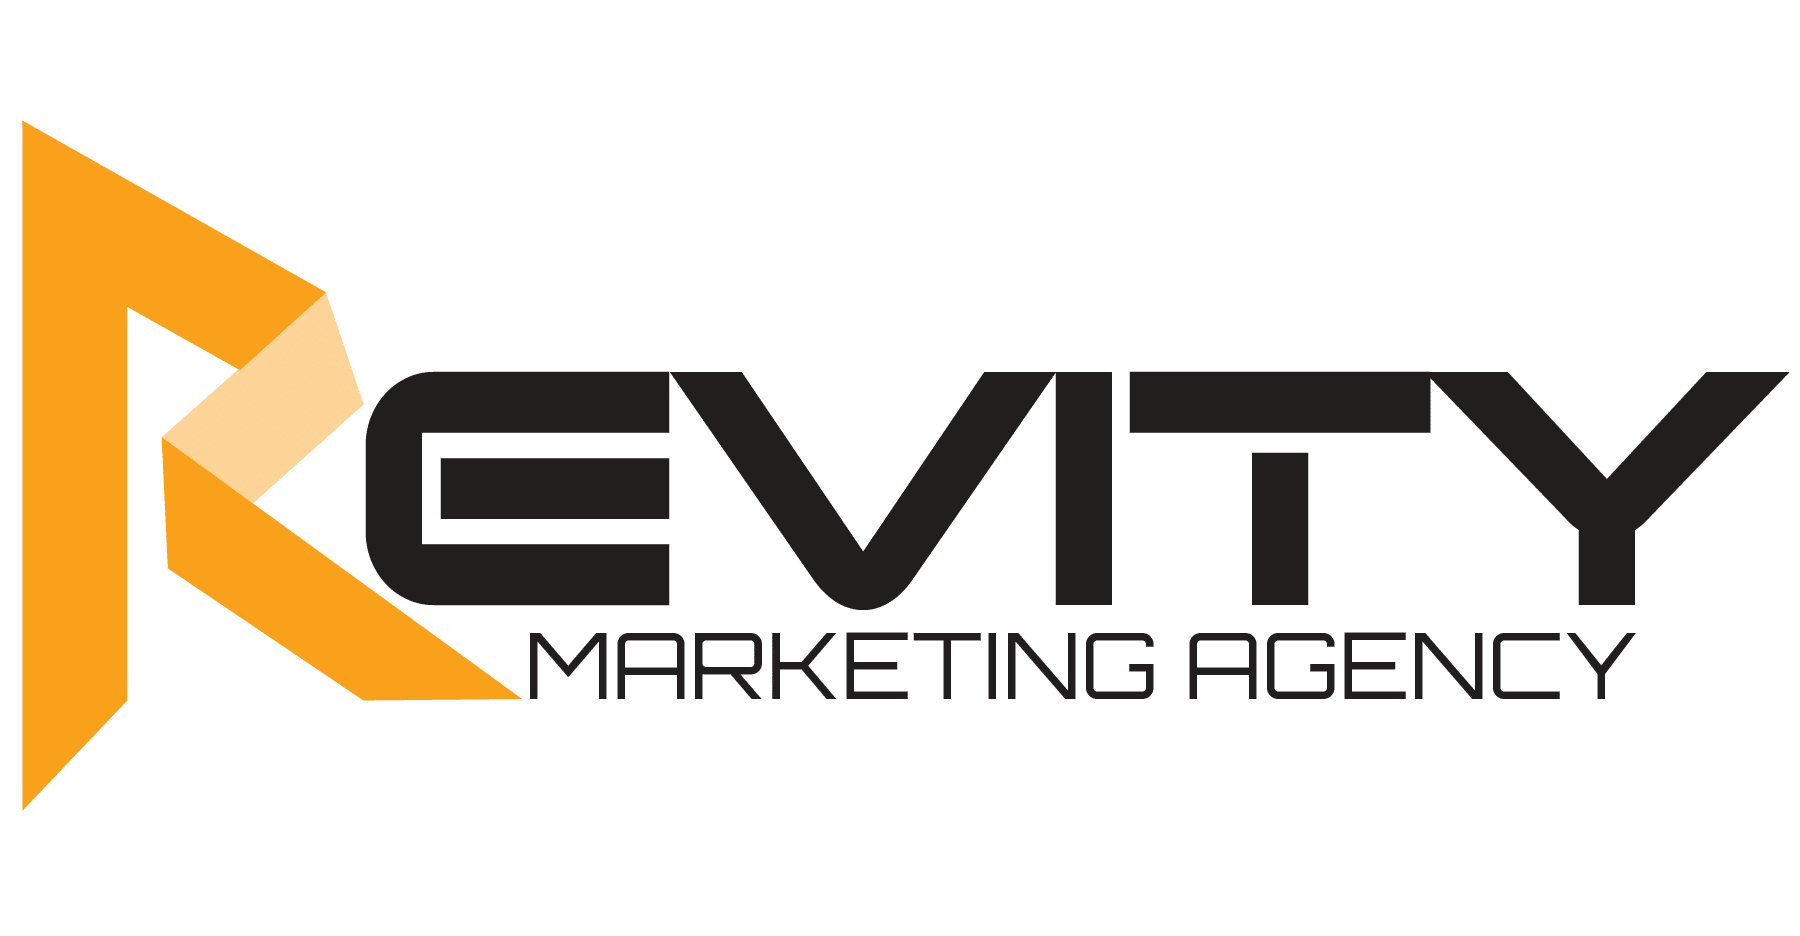 Revity Marketing Agency Utah